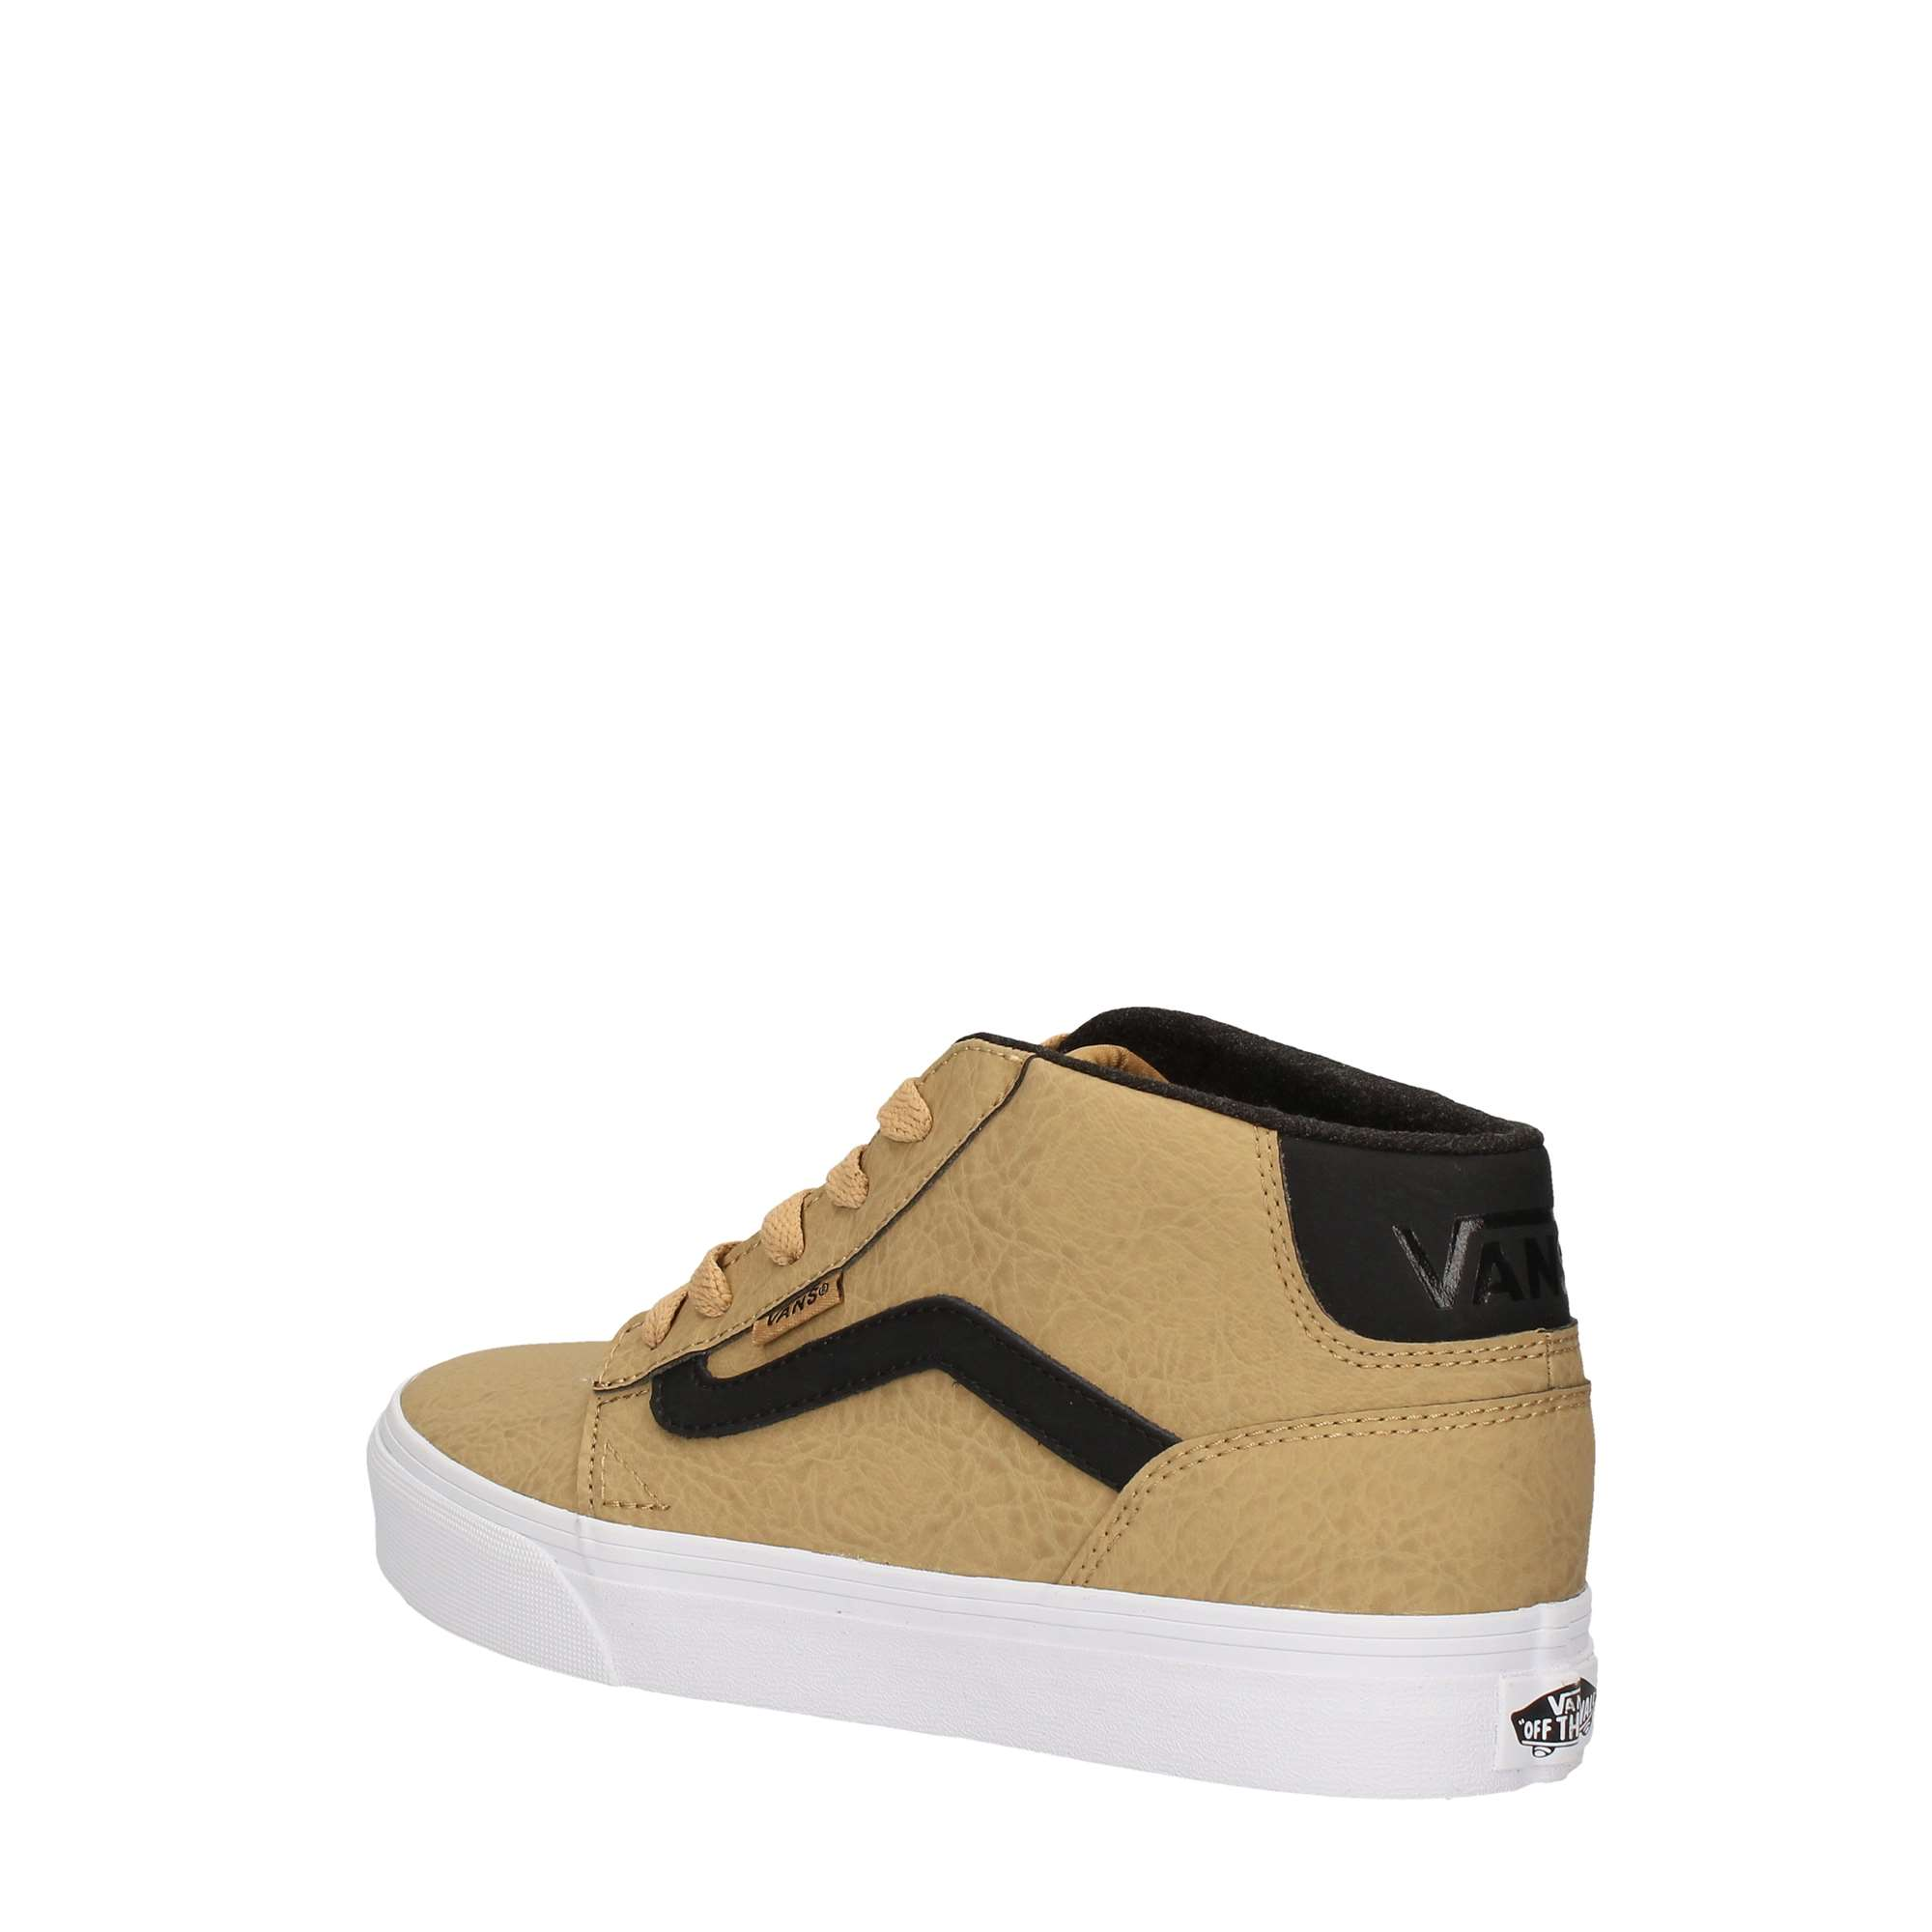 SNEAKERS Uomo VANS VN0 A2XSWONV Autunno/Inverno